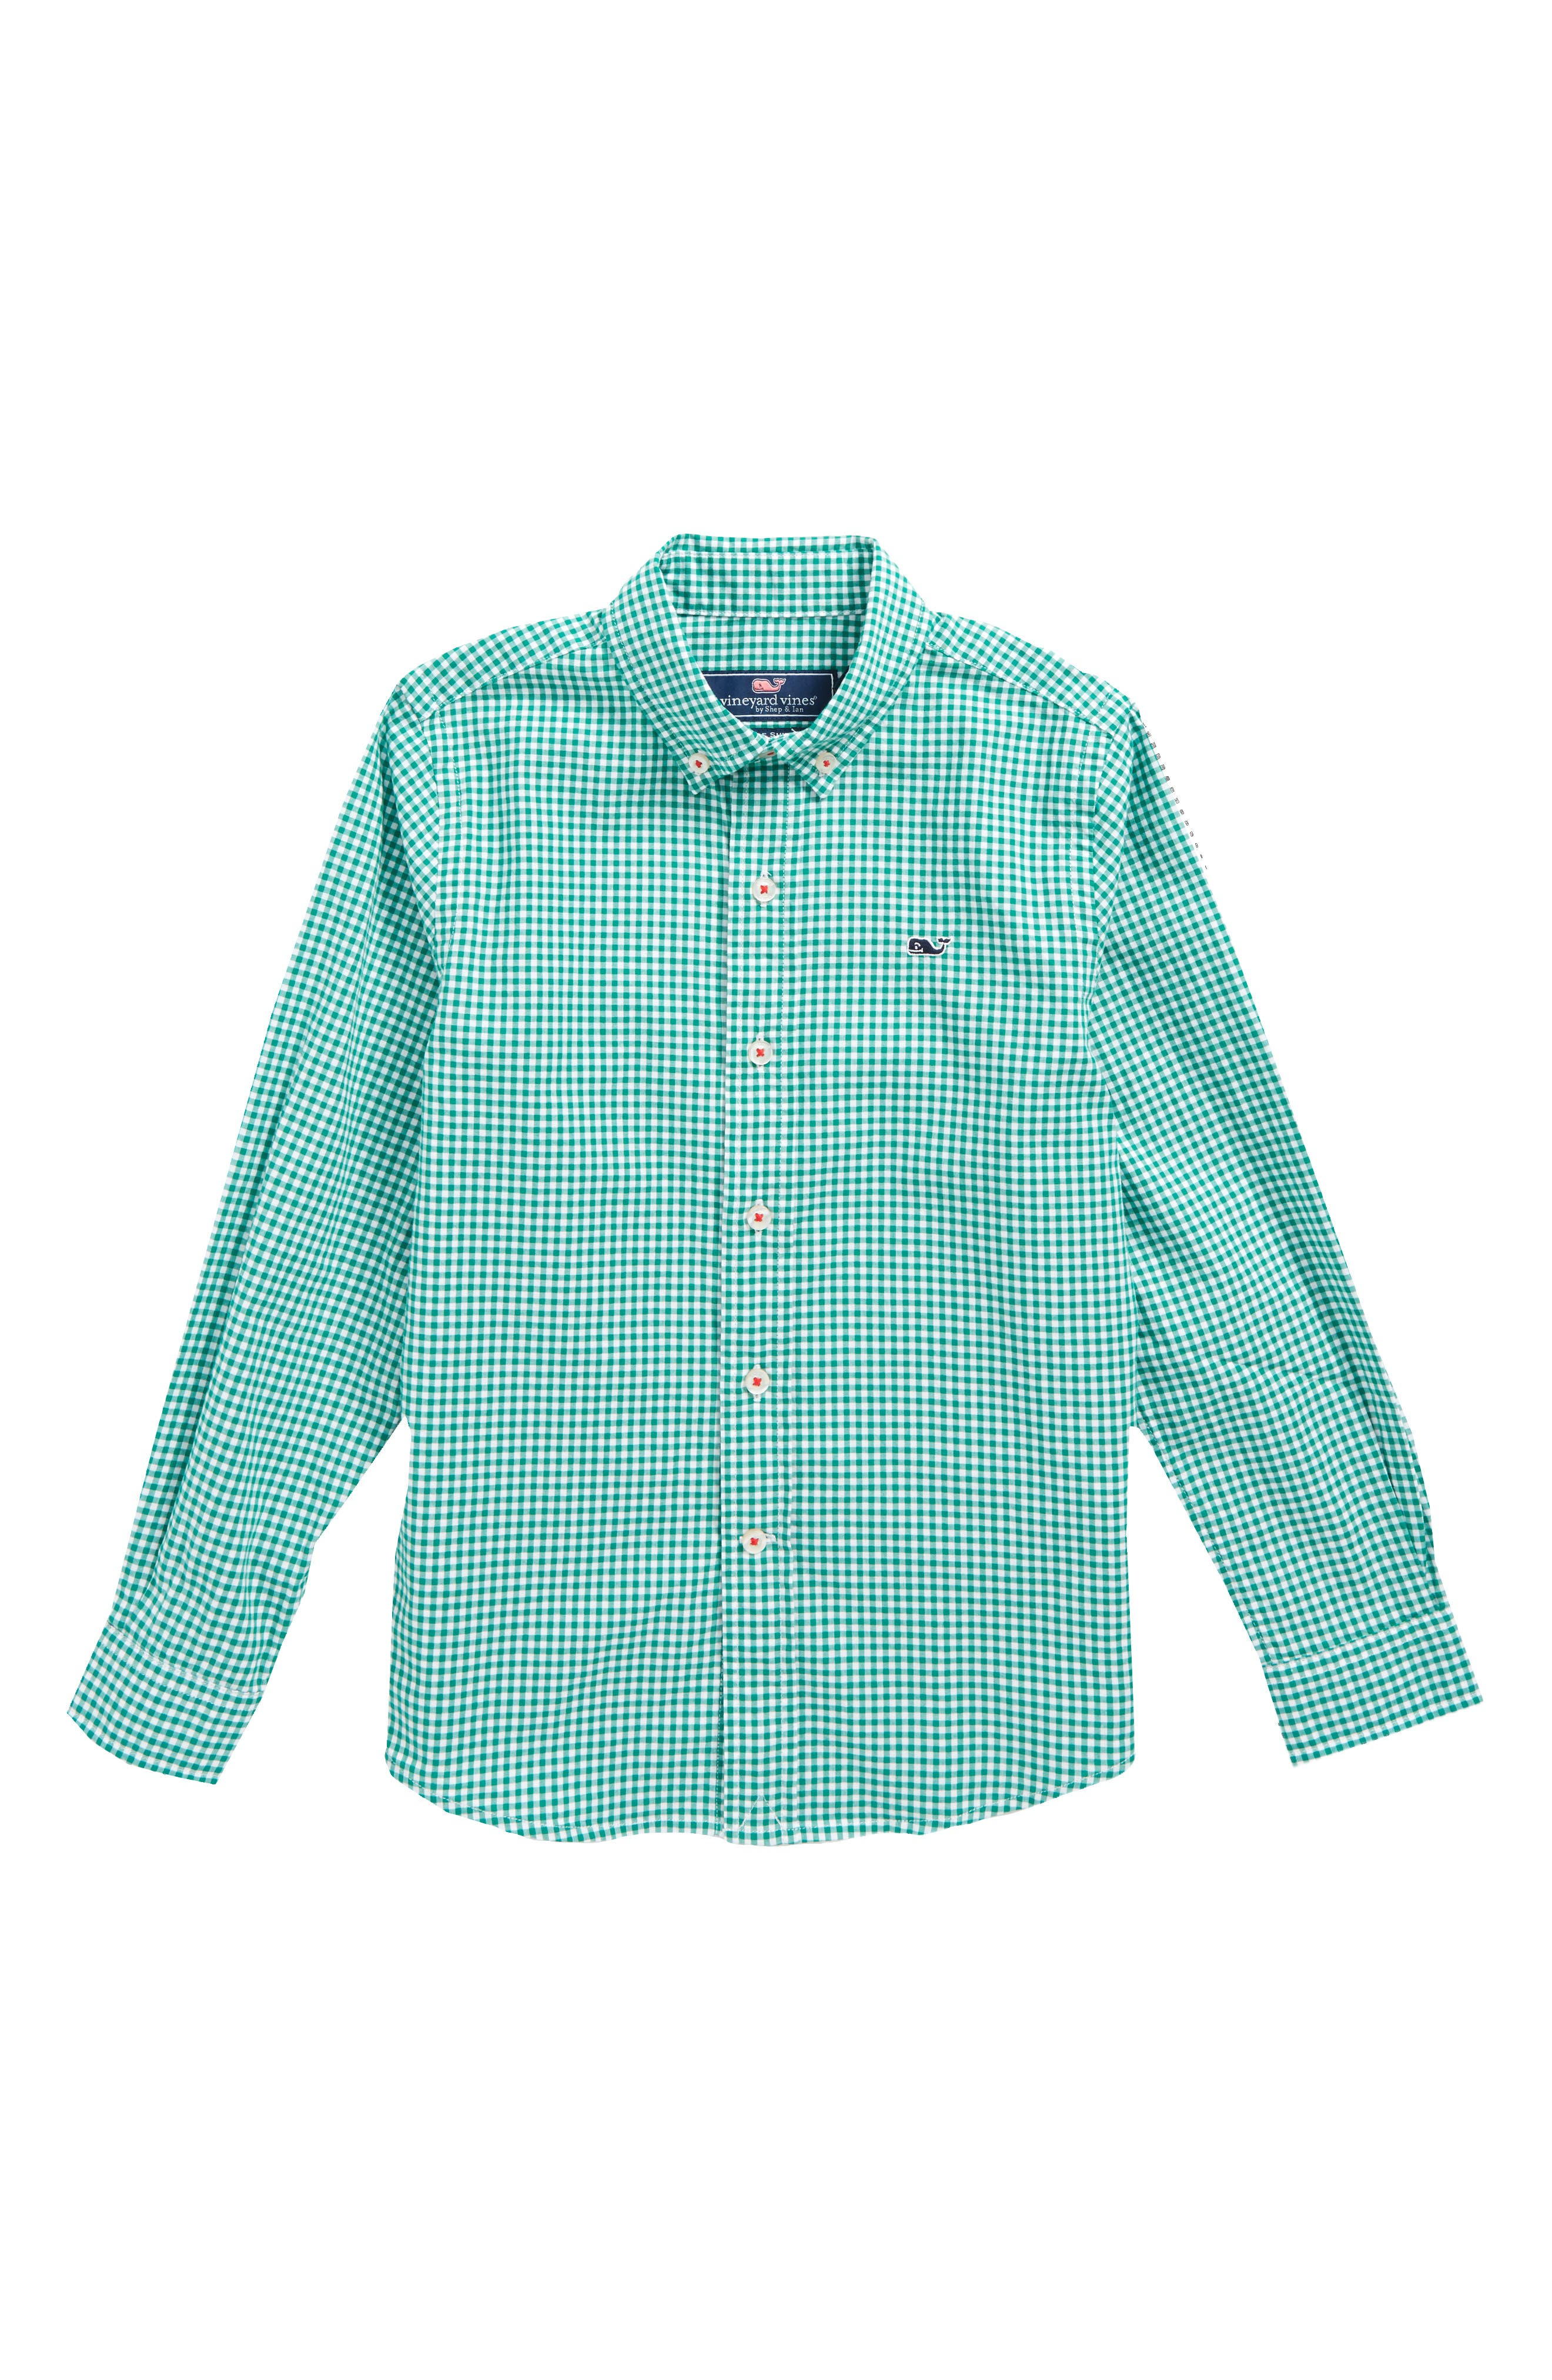 Old Town Gingham Whale Shirt,                         Main,                         color, Holly